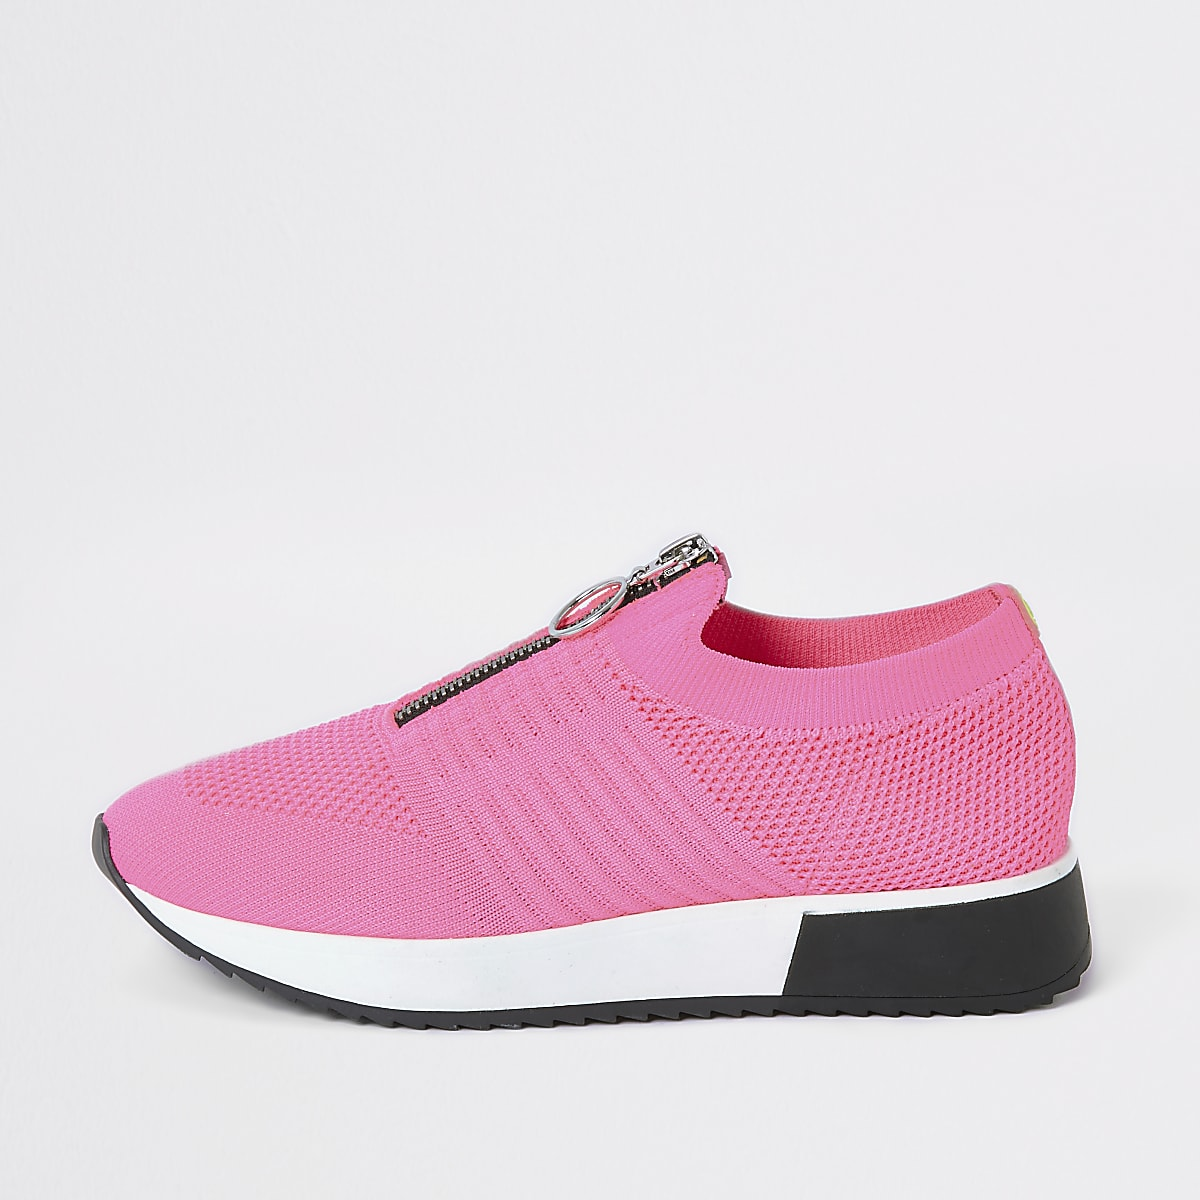 Neon pink zip front knitted runner trainers